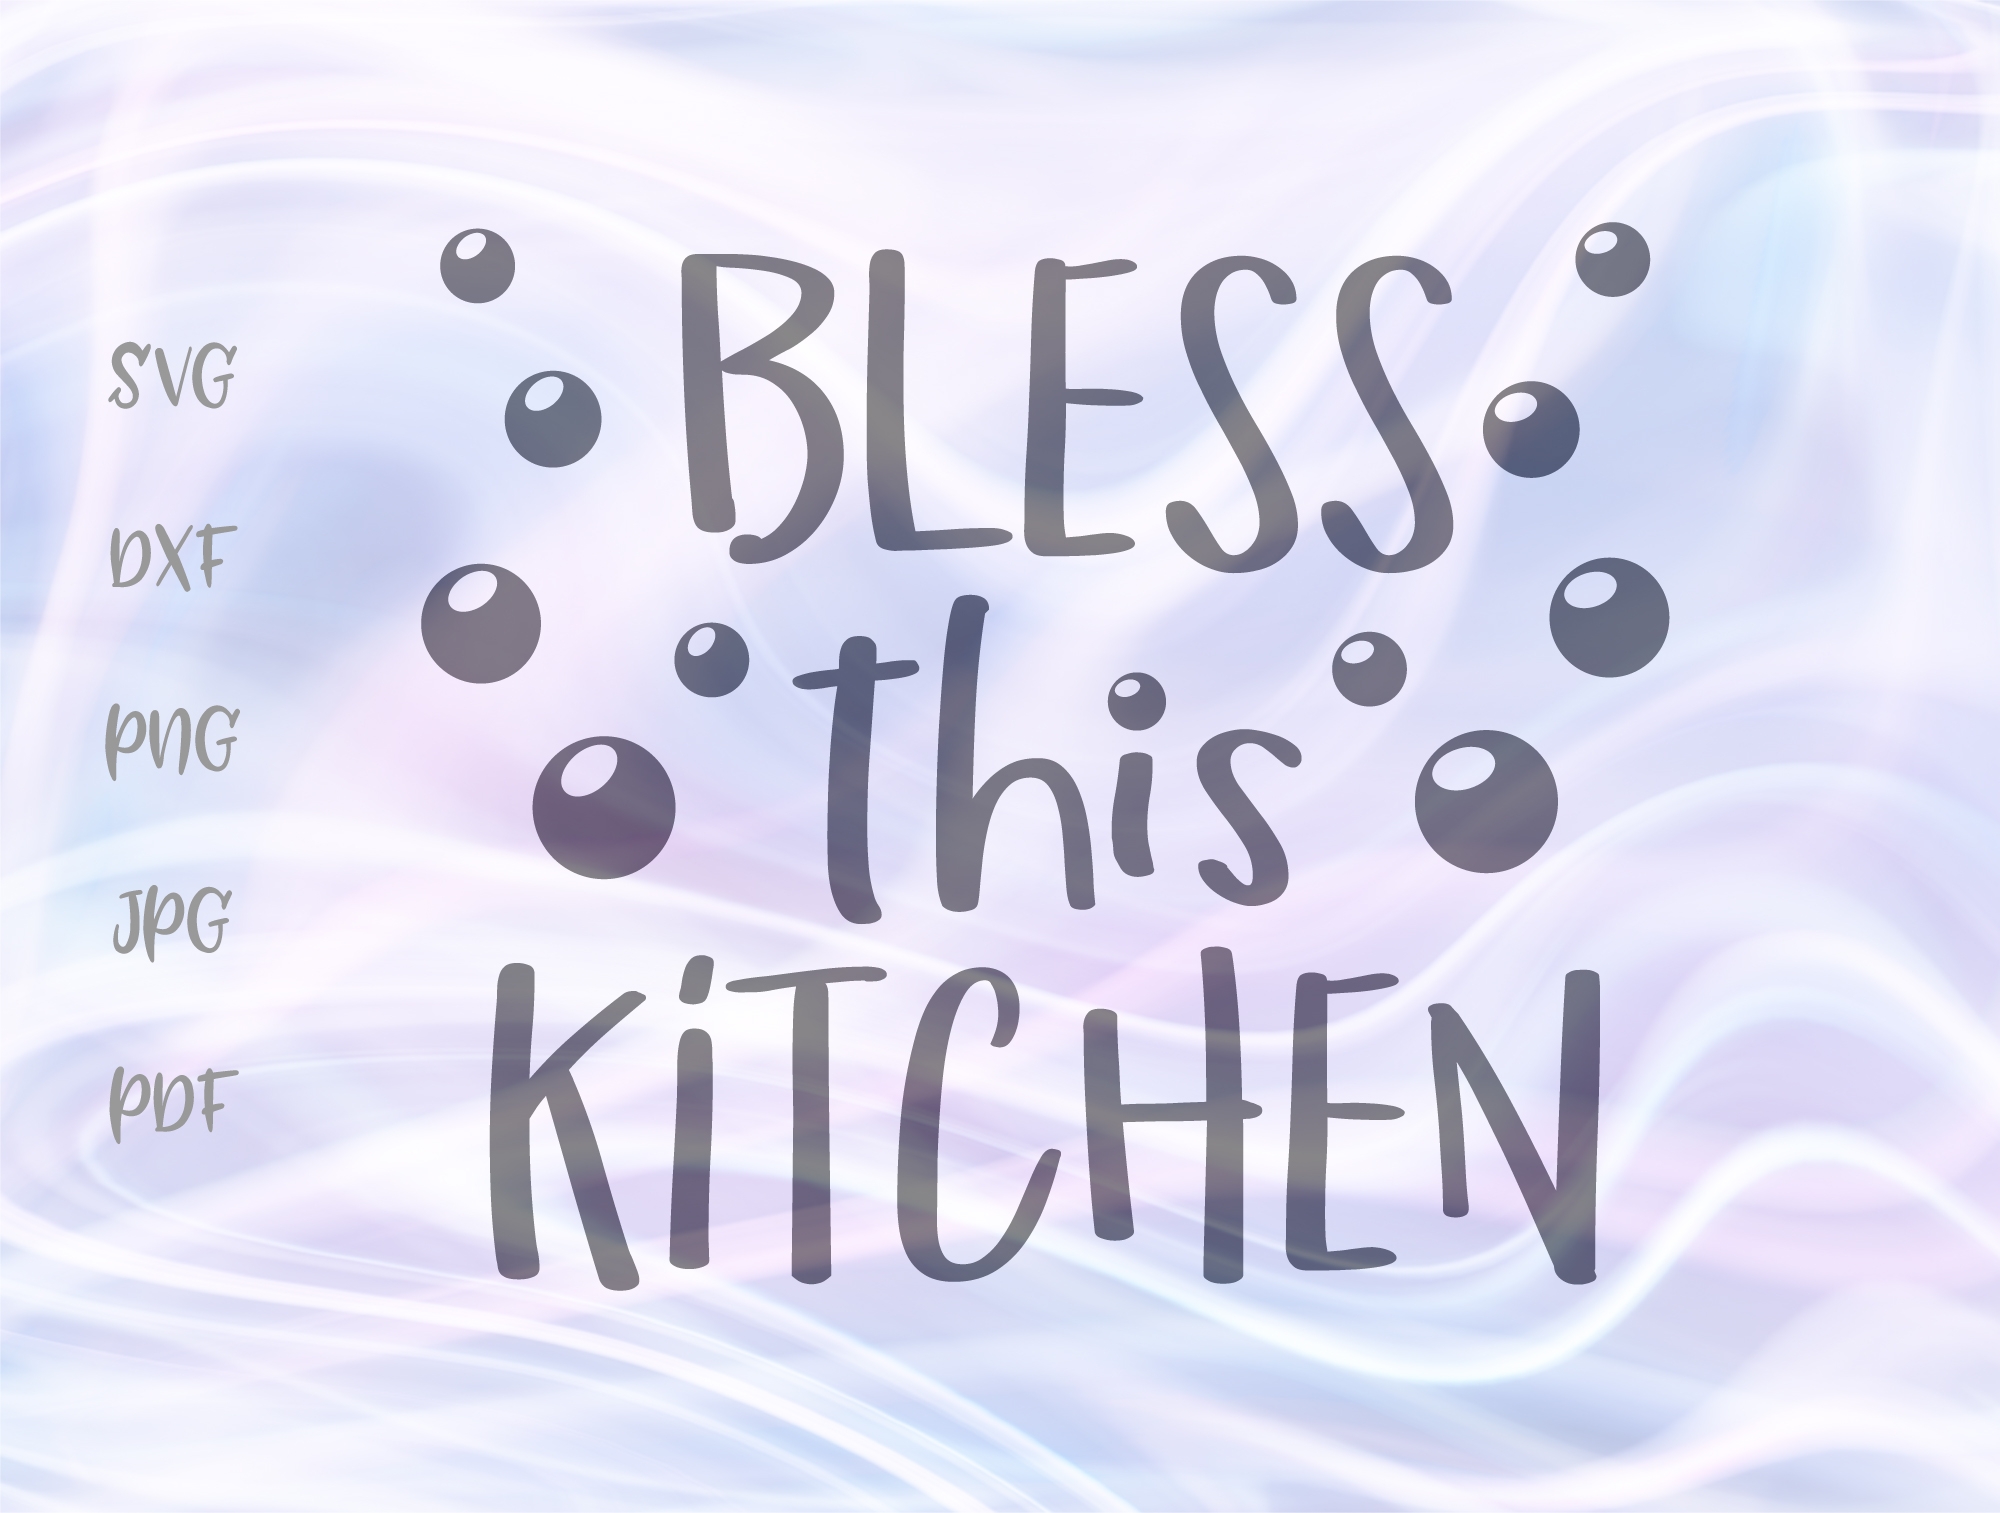 Download Free Bless This Kitchen Graphic By Digitals By Hanna Creative Fabrica for Cricut Explore, Silhouette and other cutting machines.